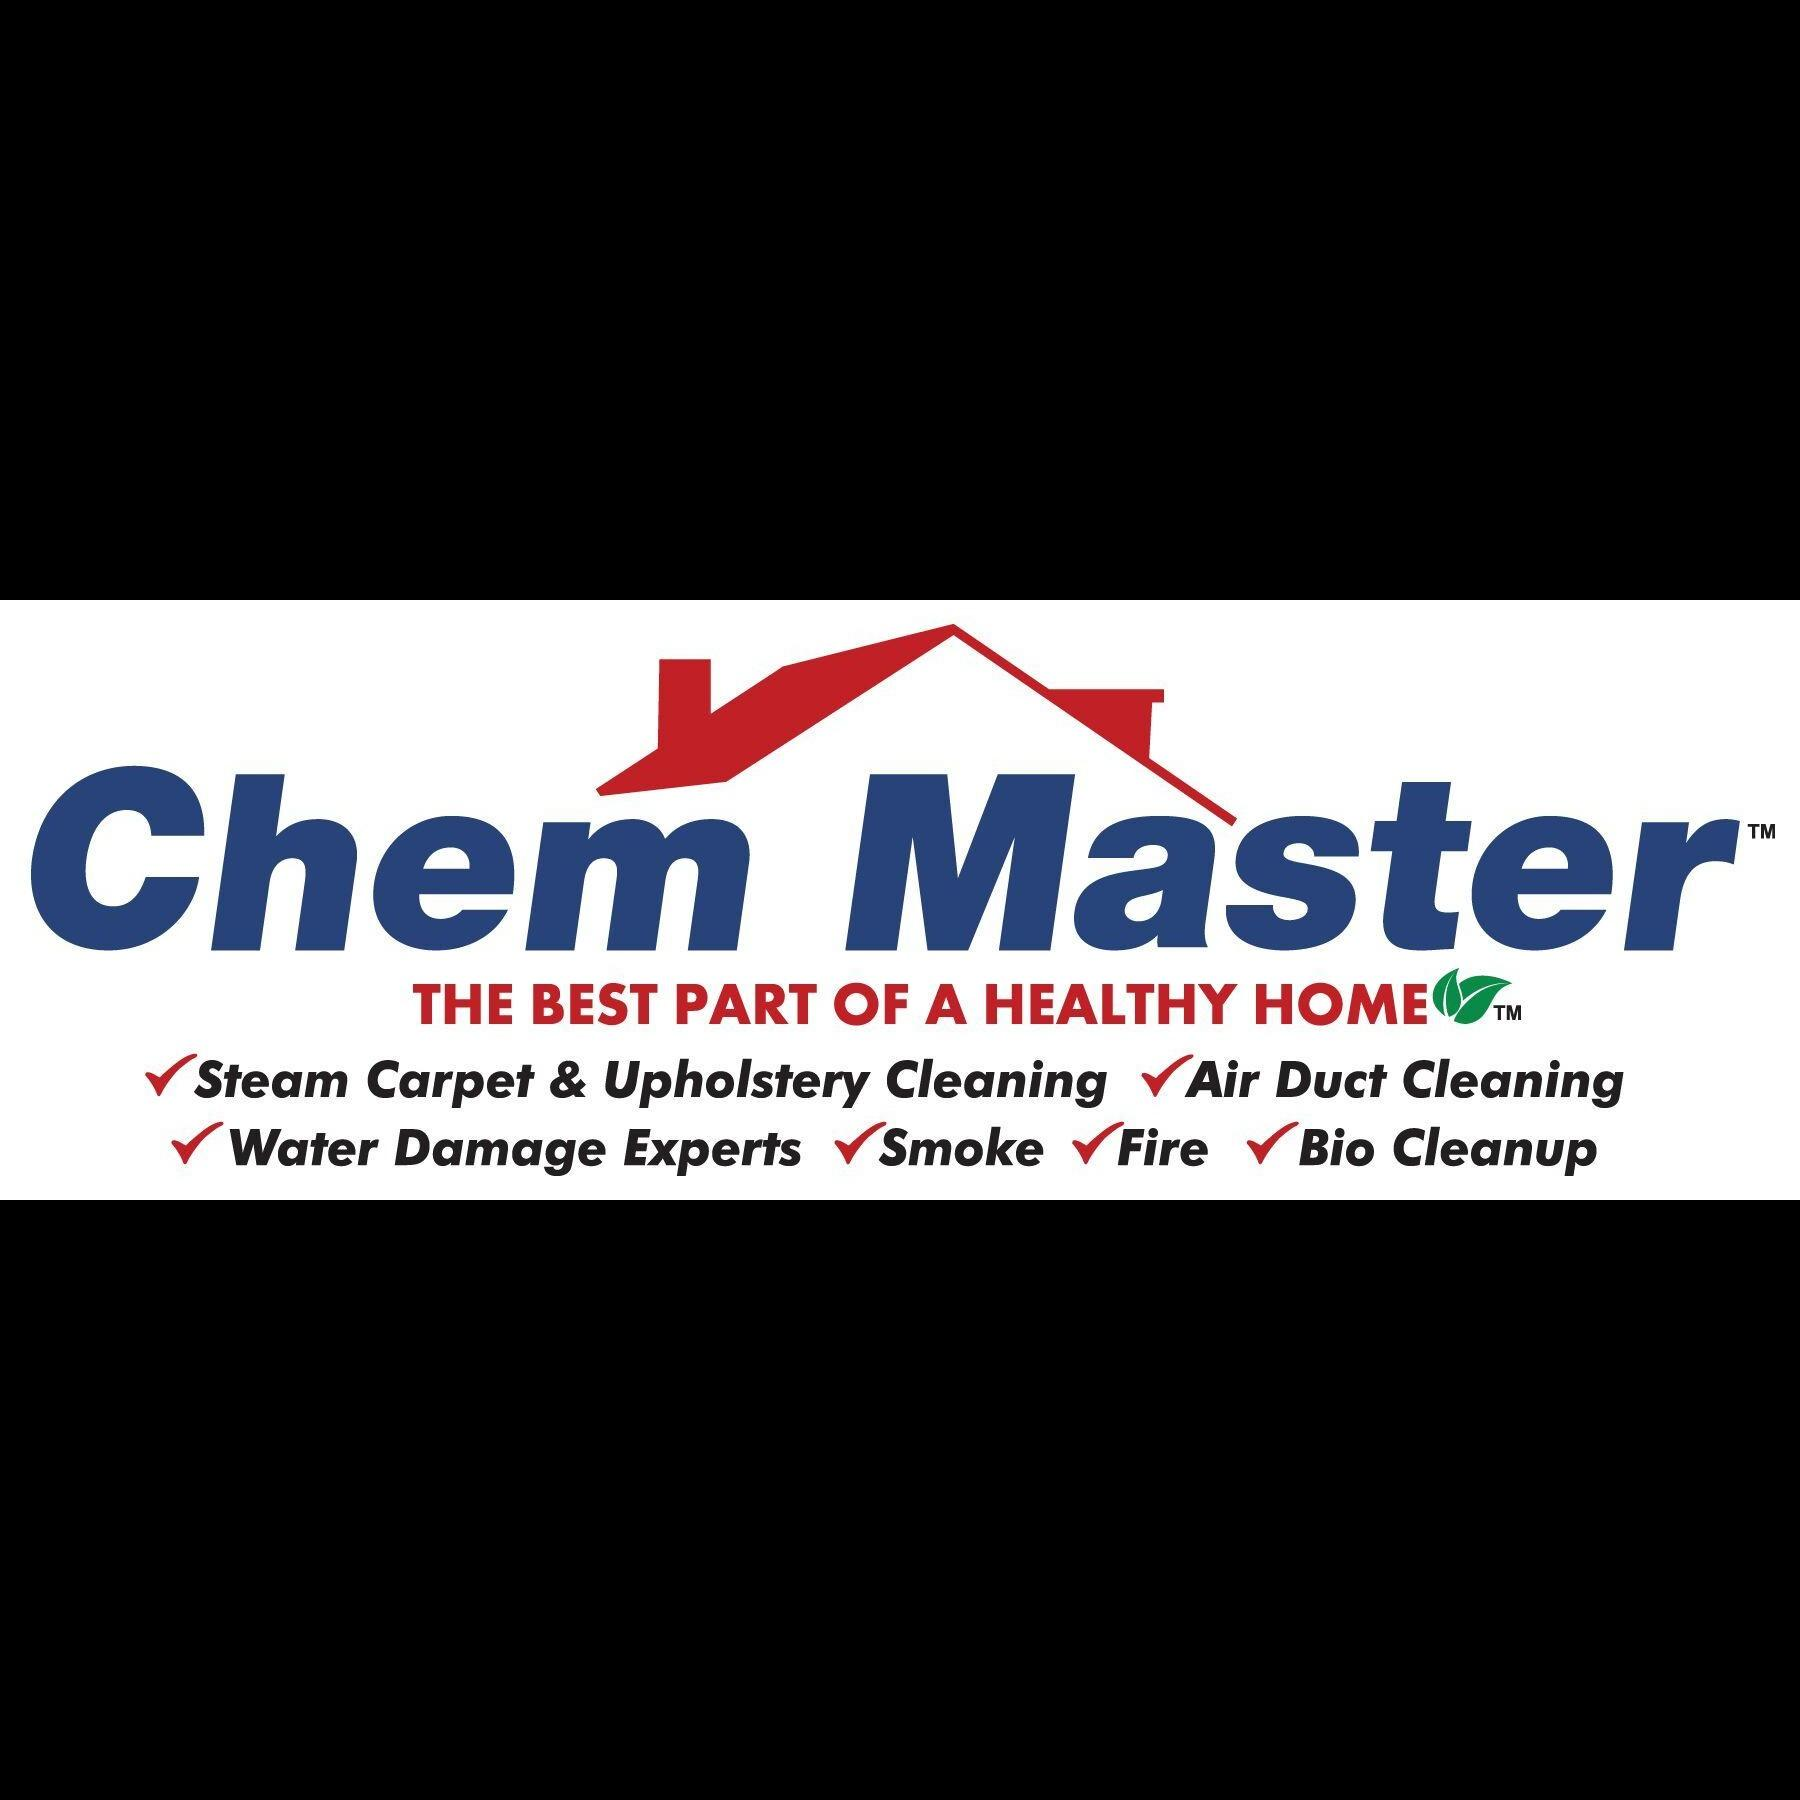 Chem Master Carpet Cleaning And Restoration